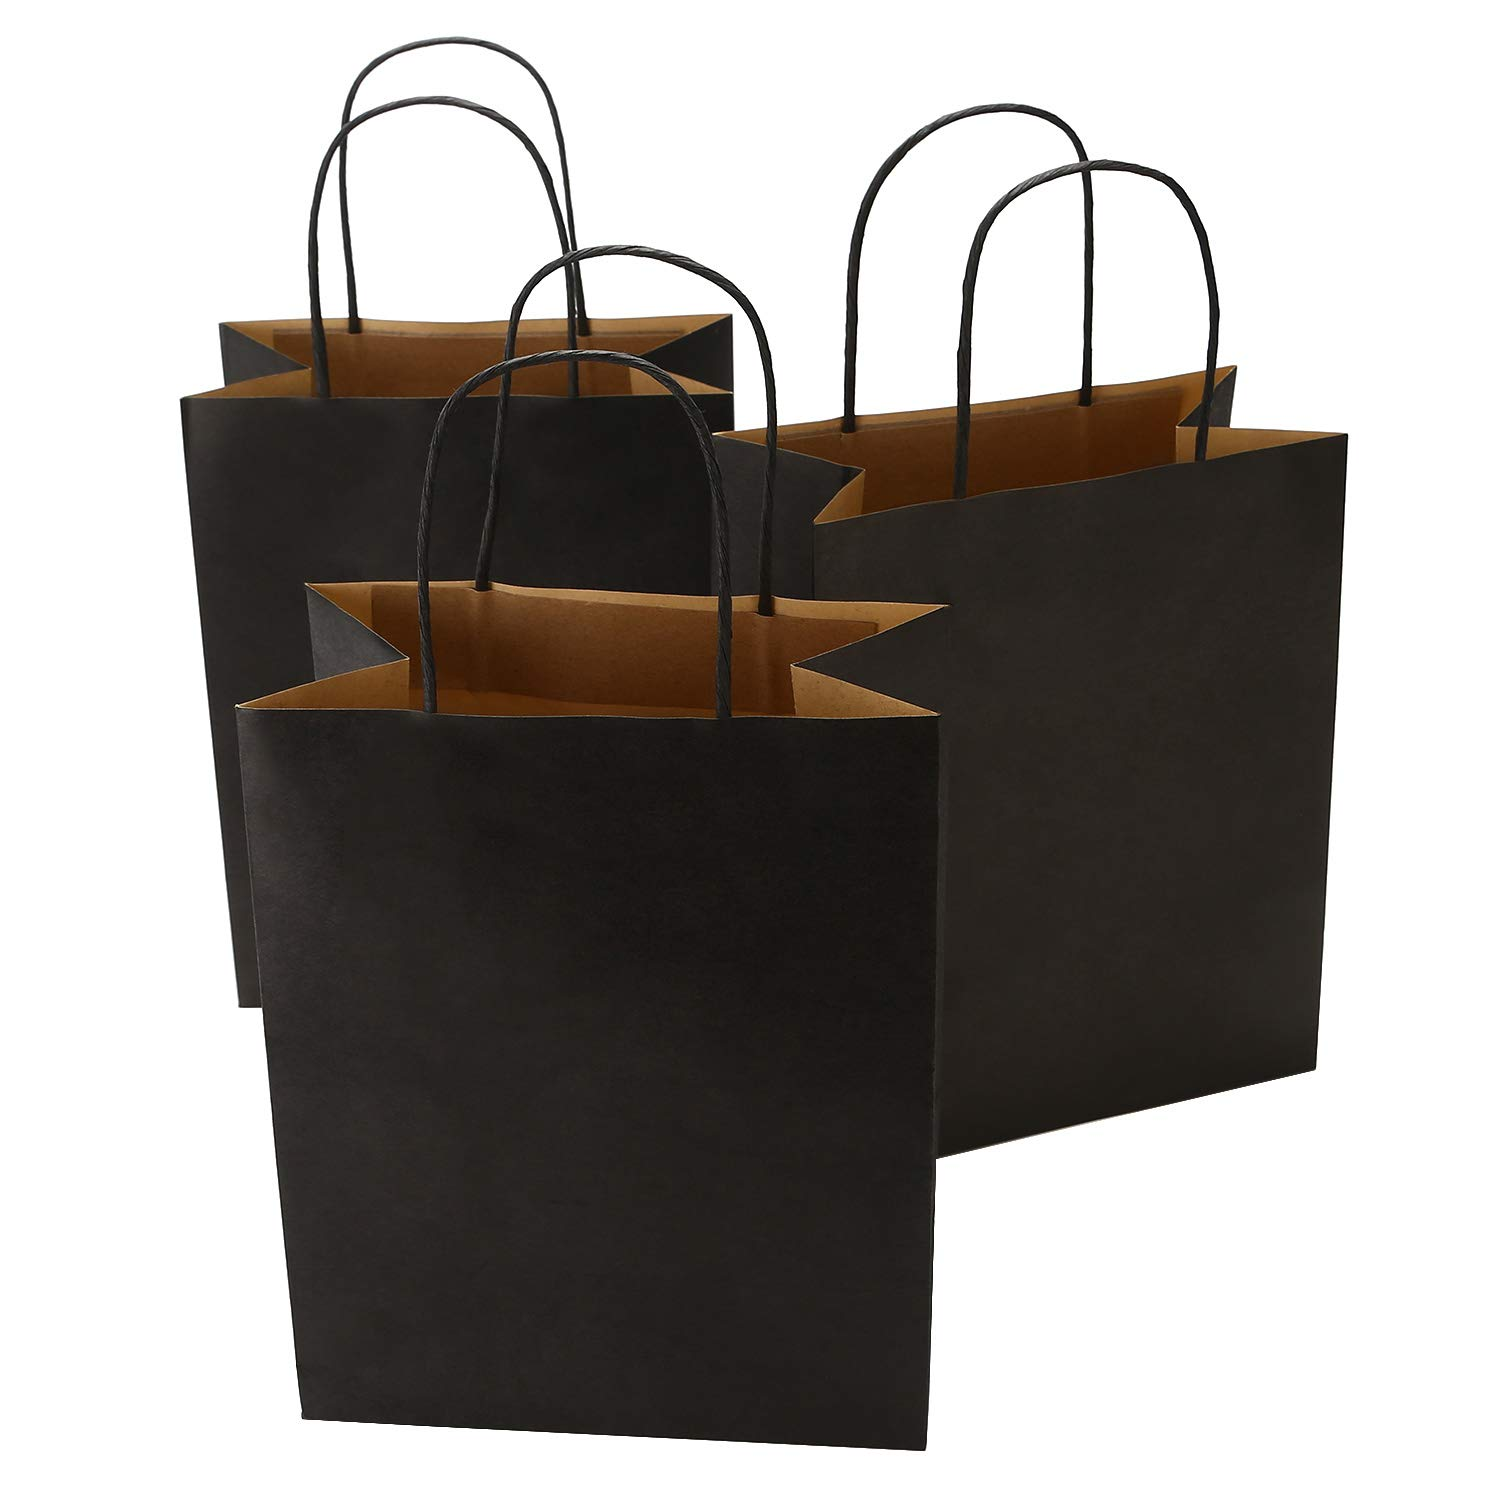 Road 8x4.75x10.5 Inches 50pcs Black Kraft Paper Bags with Handle, Shopping Bag, Merchandise Bag, Party Bag